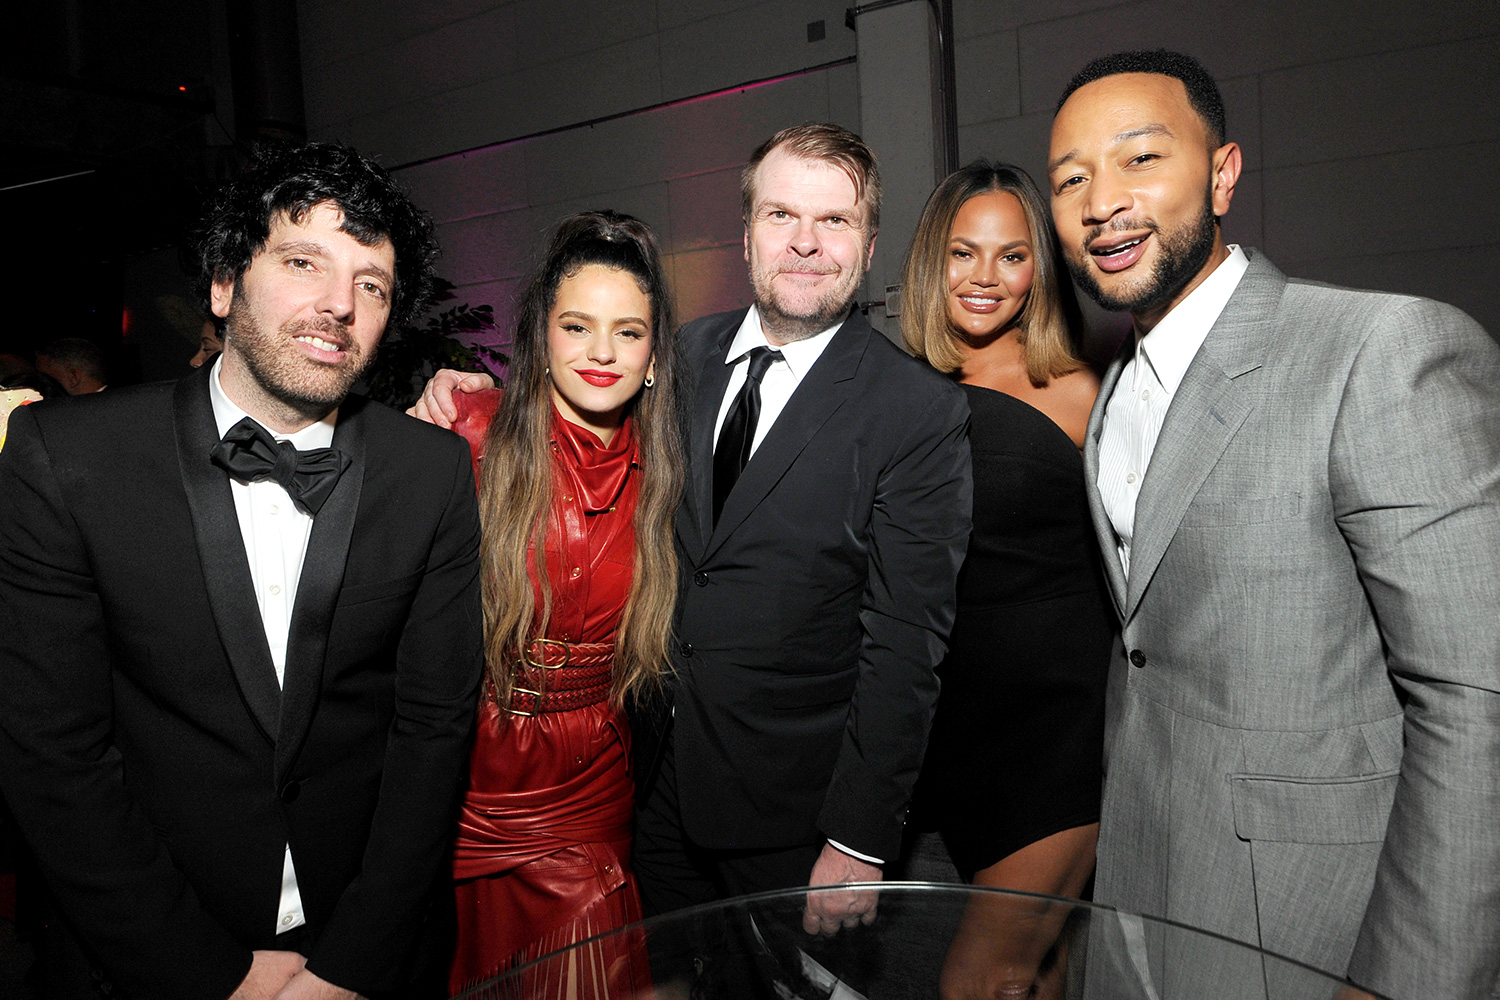 Columbia Chairman & CEO Ron Perry, Rosalía, Sony Music Group Chairman Rob Stringer, Chrissy Teigen, and John Legend